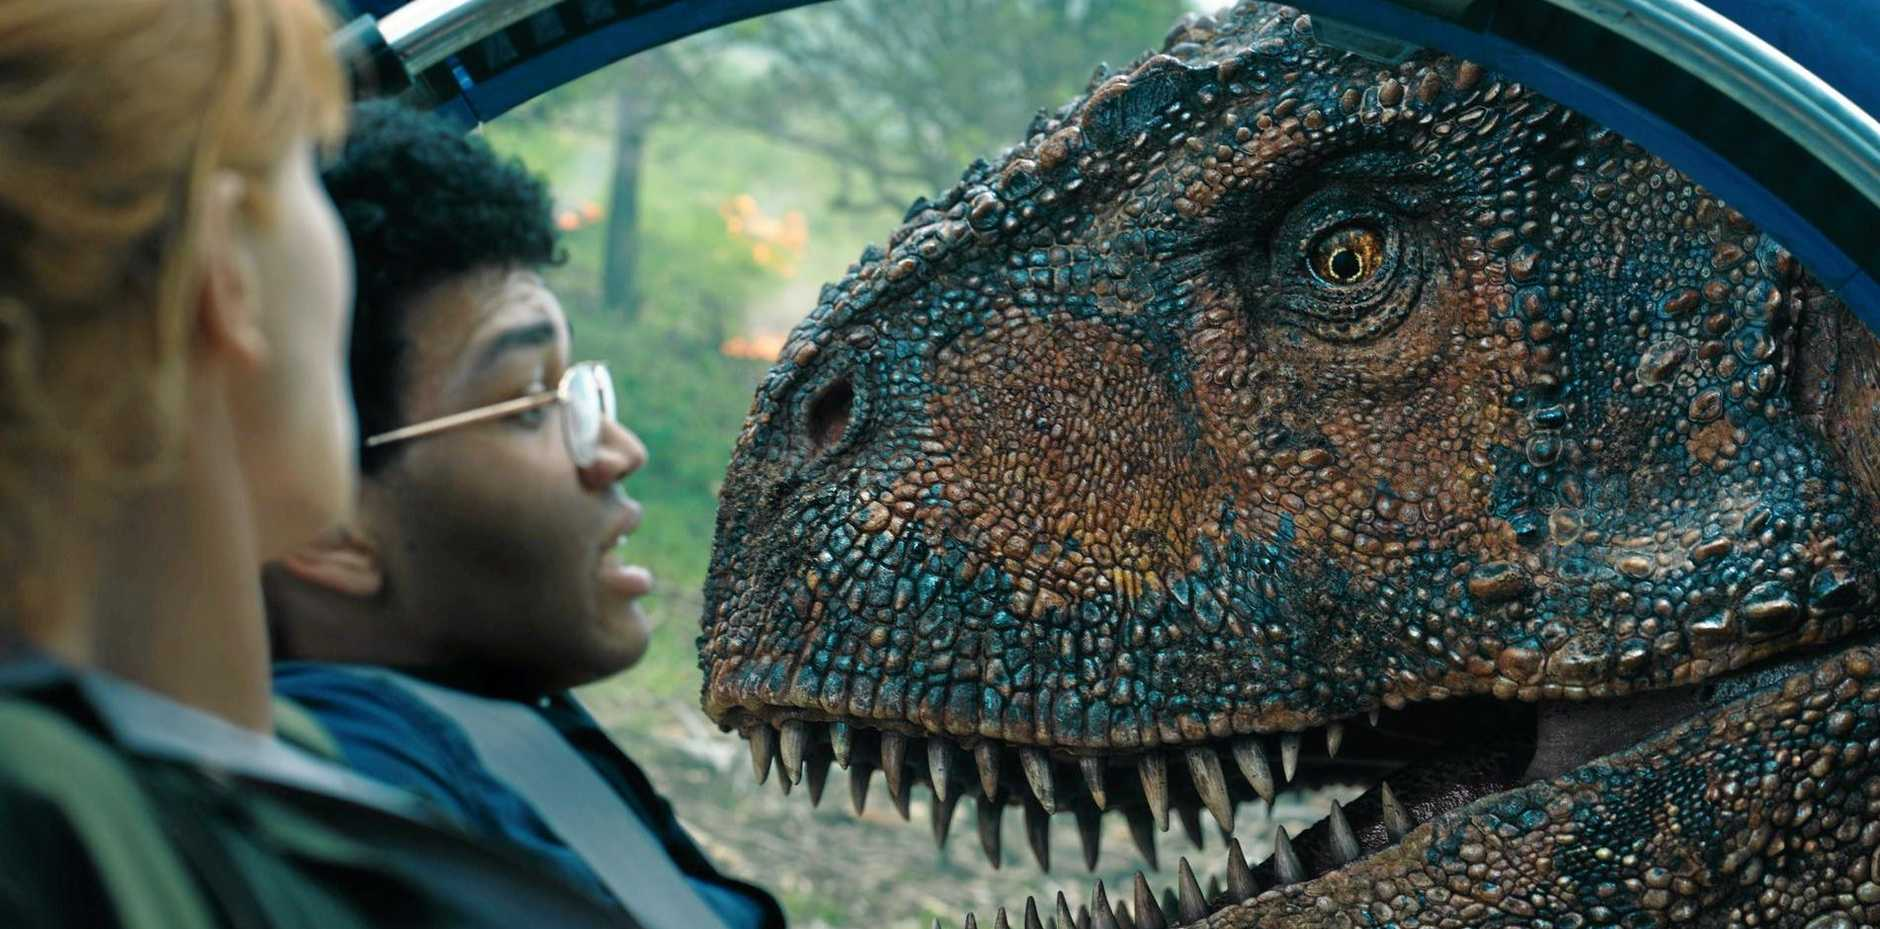 Bryce Dallas Howard and Justice Smith in a scene from Jurassic World: Fallen Kingdom.